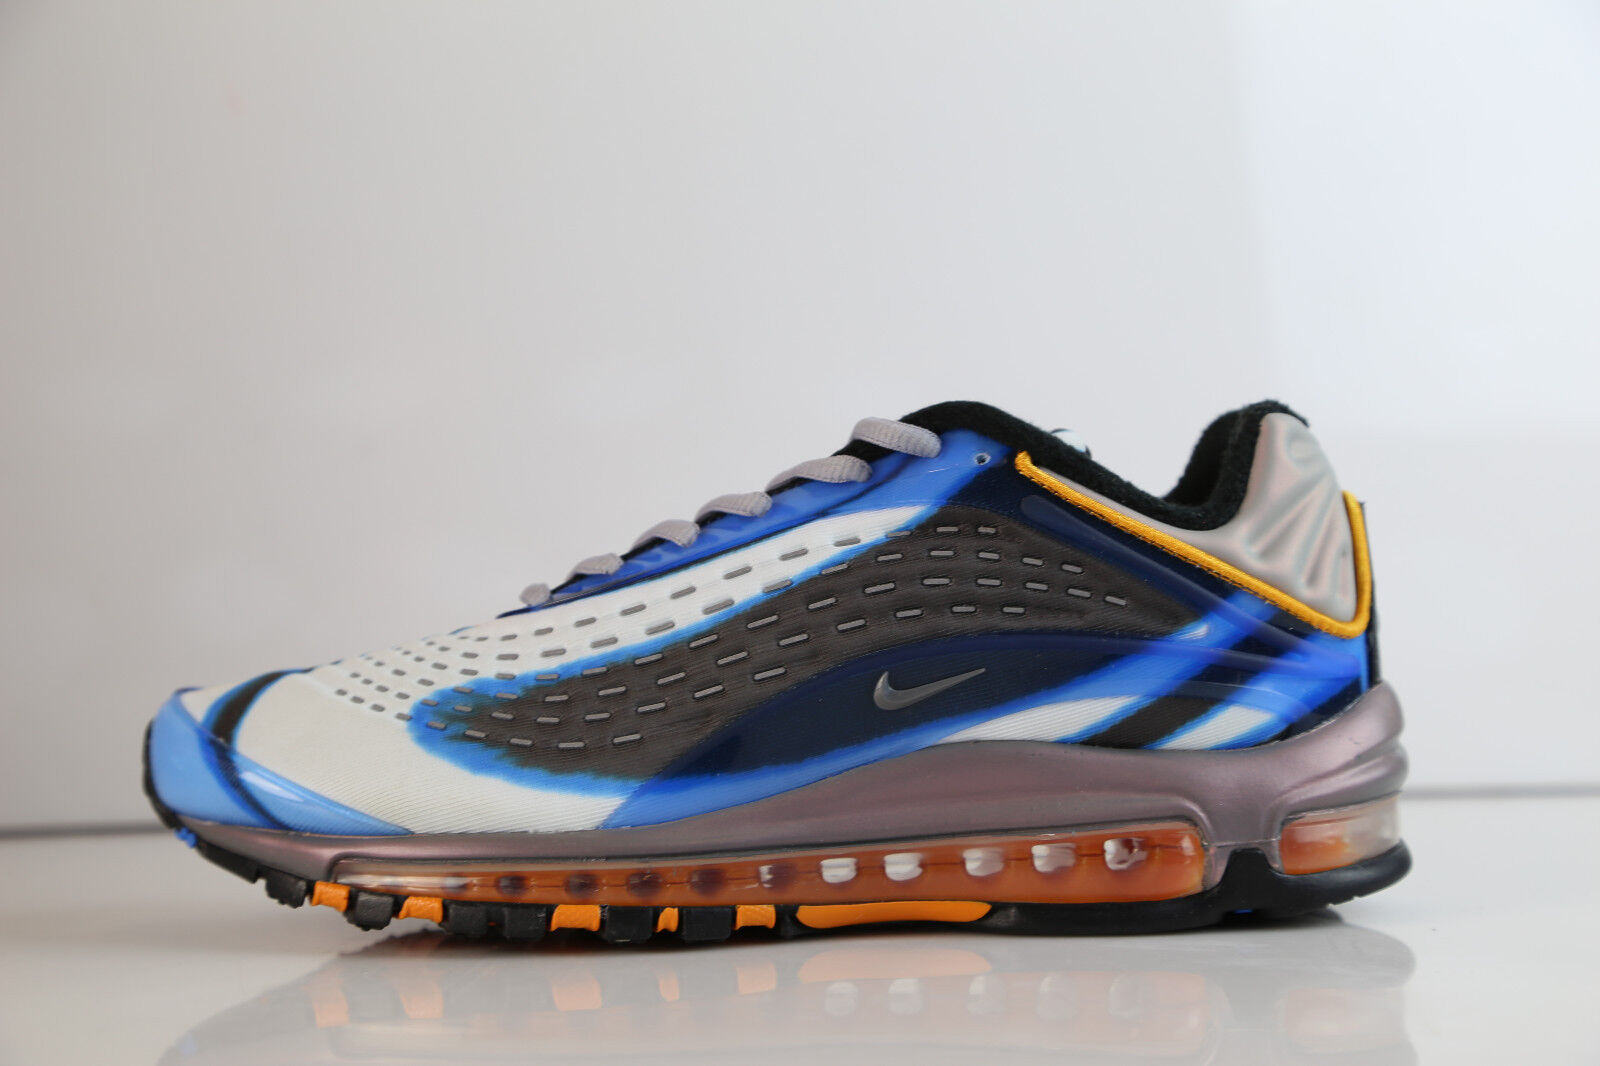 Nike Air Max Deluxe Photo Blue Wolf Grey AJ7831-401 8-13 1 delux sk